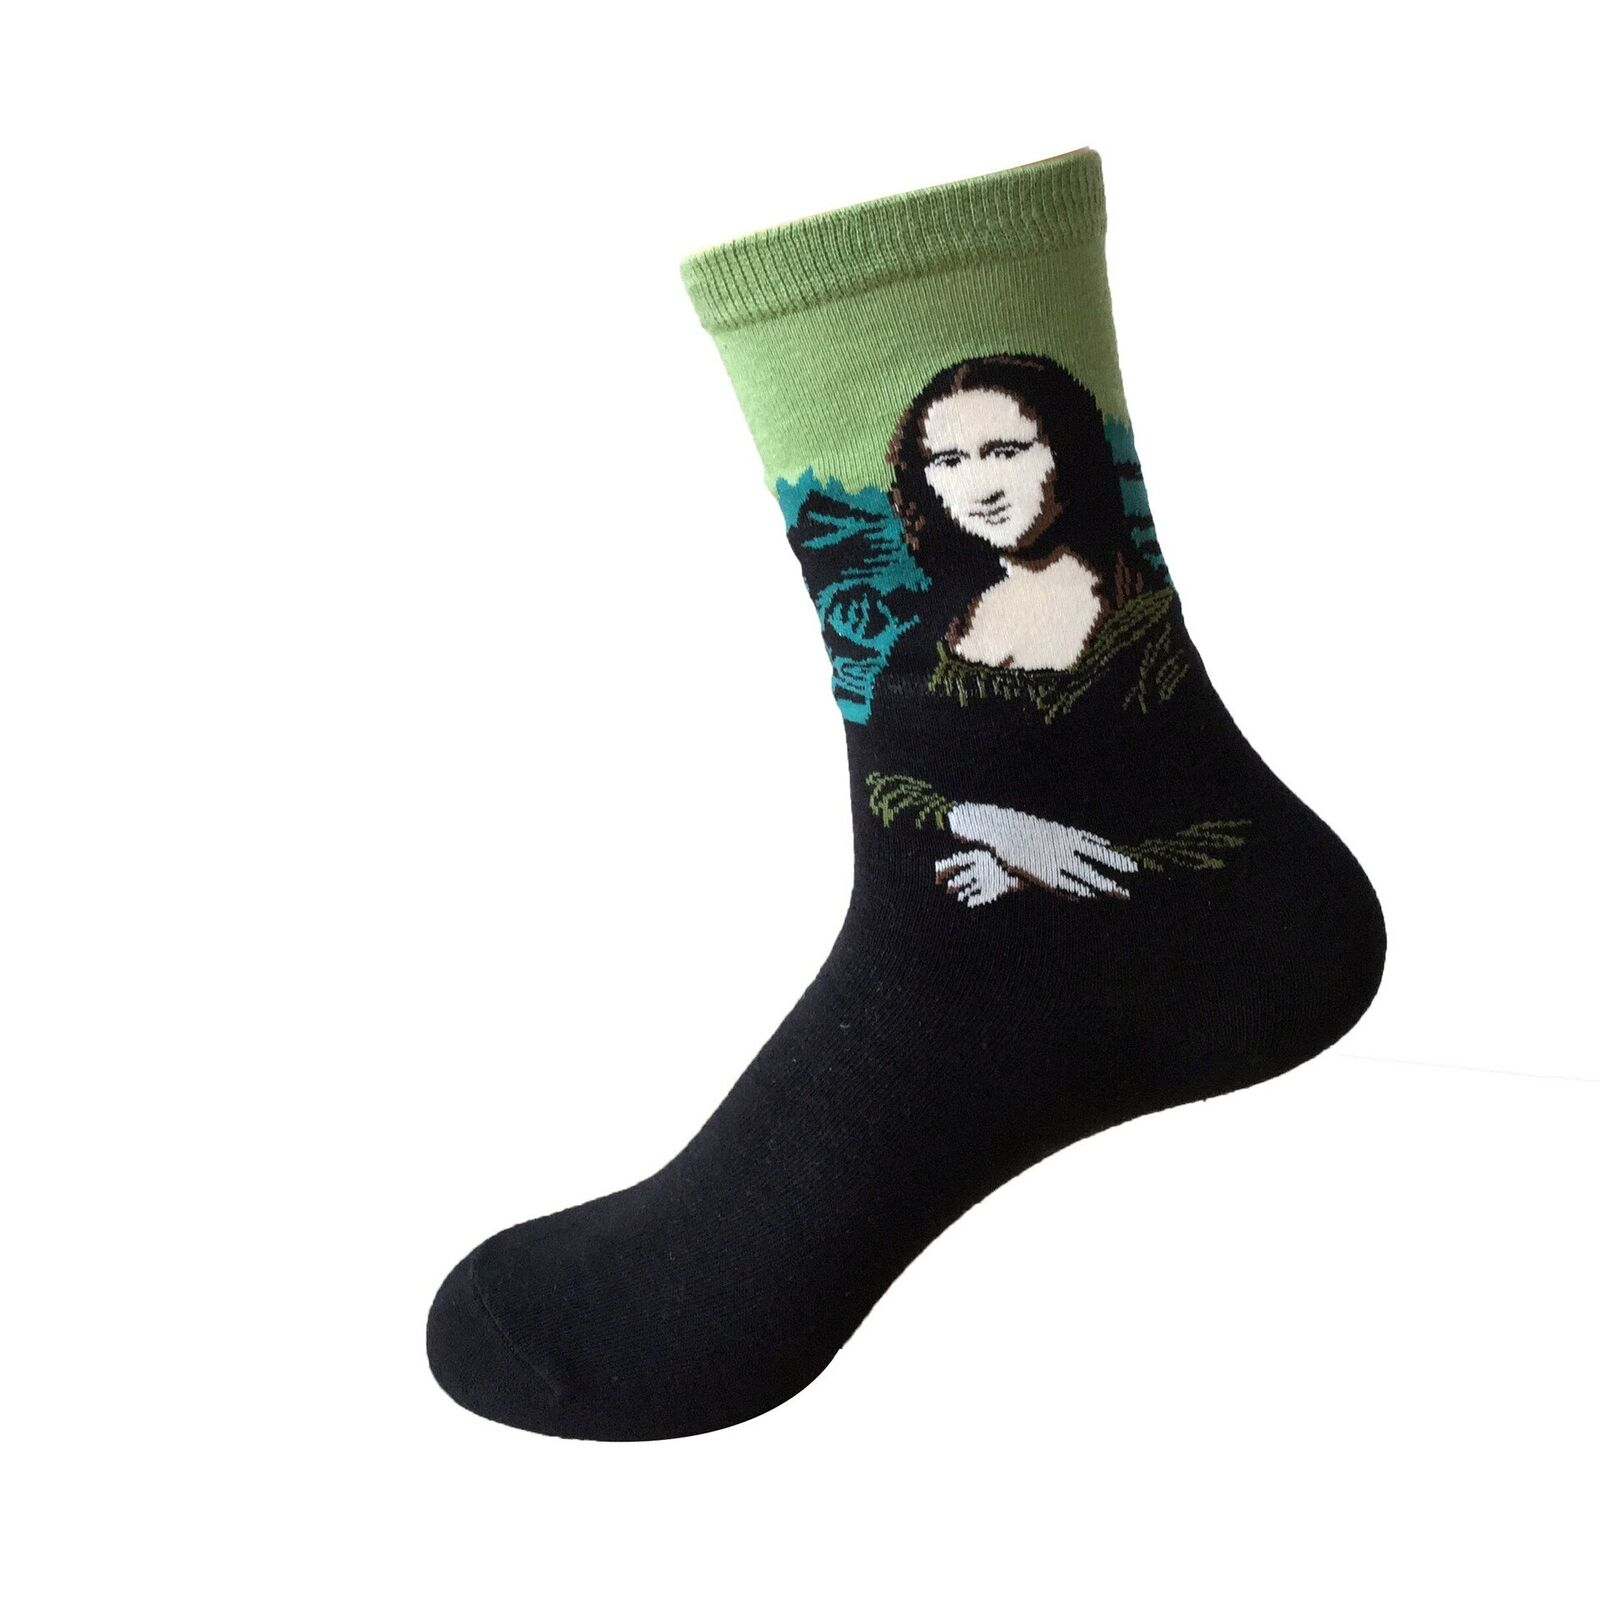 Mona Lisa Painting Sock Art Funny Men Women Gift Novelty Leonardo Da Vinci Funny